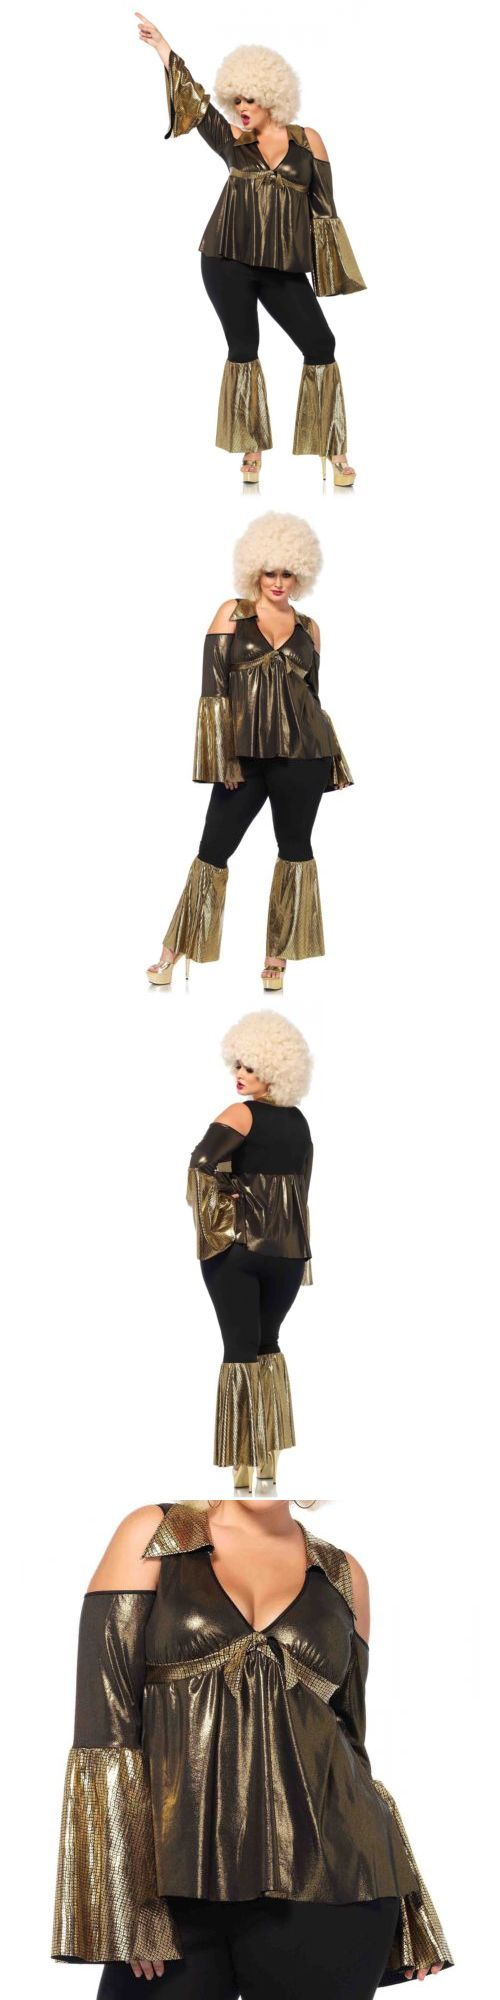 Halloween Costumes Women: Disco Costume Adult 70S Diva Queen Halloween Fancy Dress -> BUY IT NOW ONLY: $54.95 on eBay!